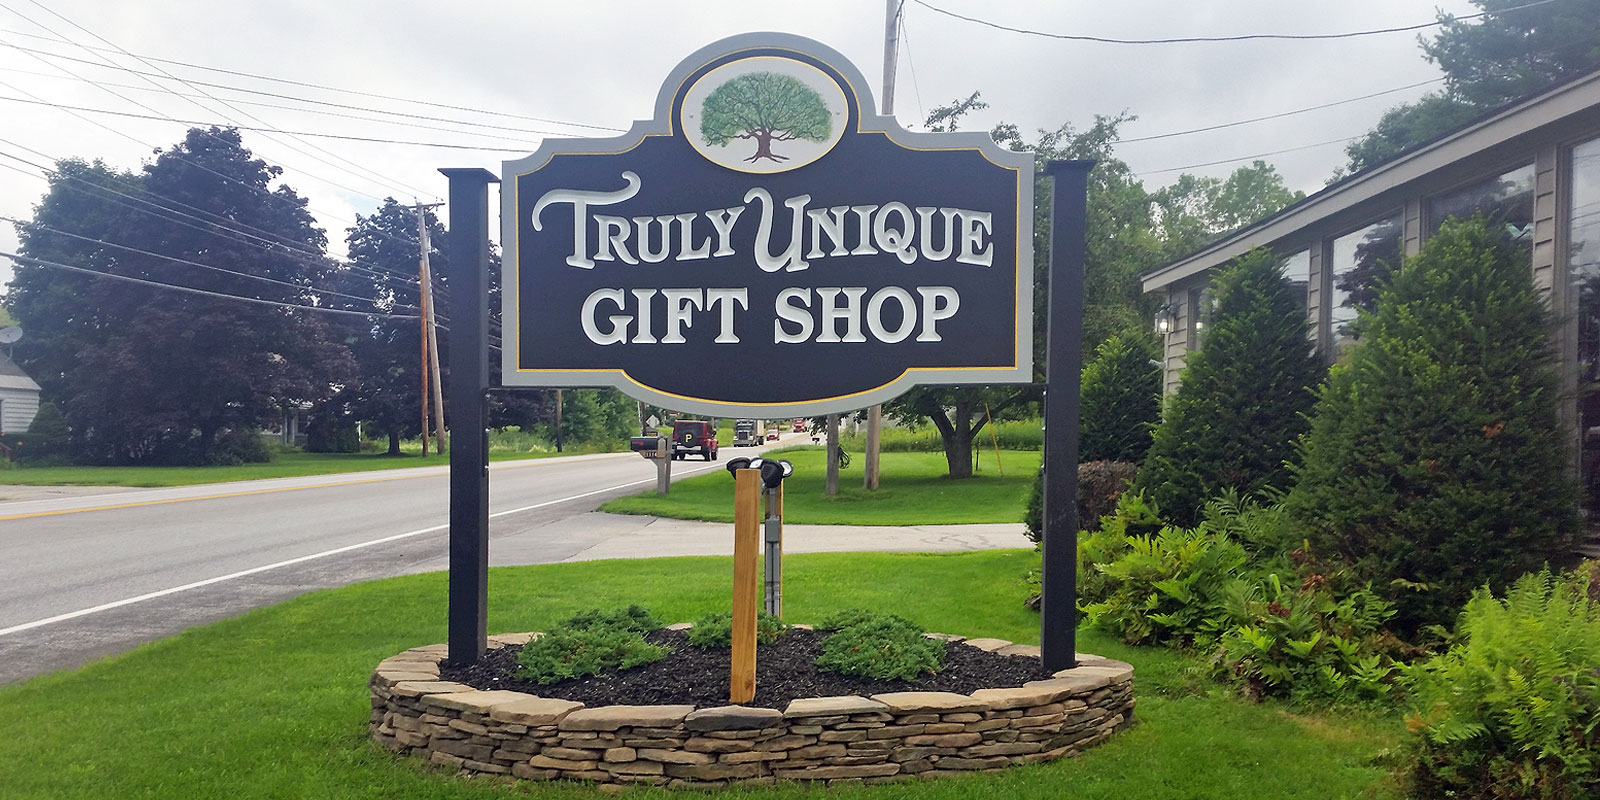 Truly Unique Gift Shop Rutland VT